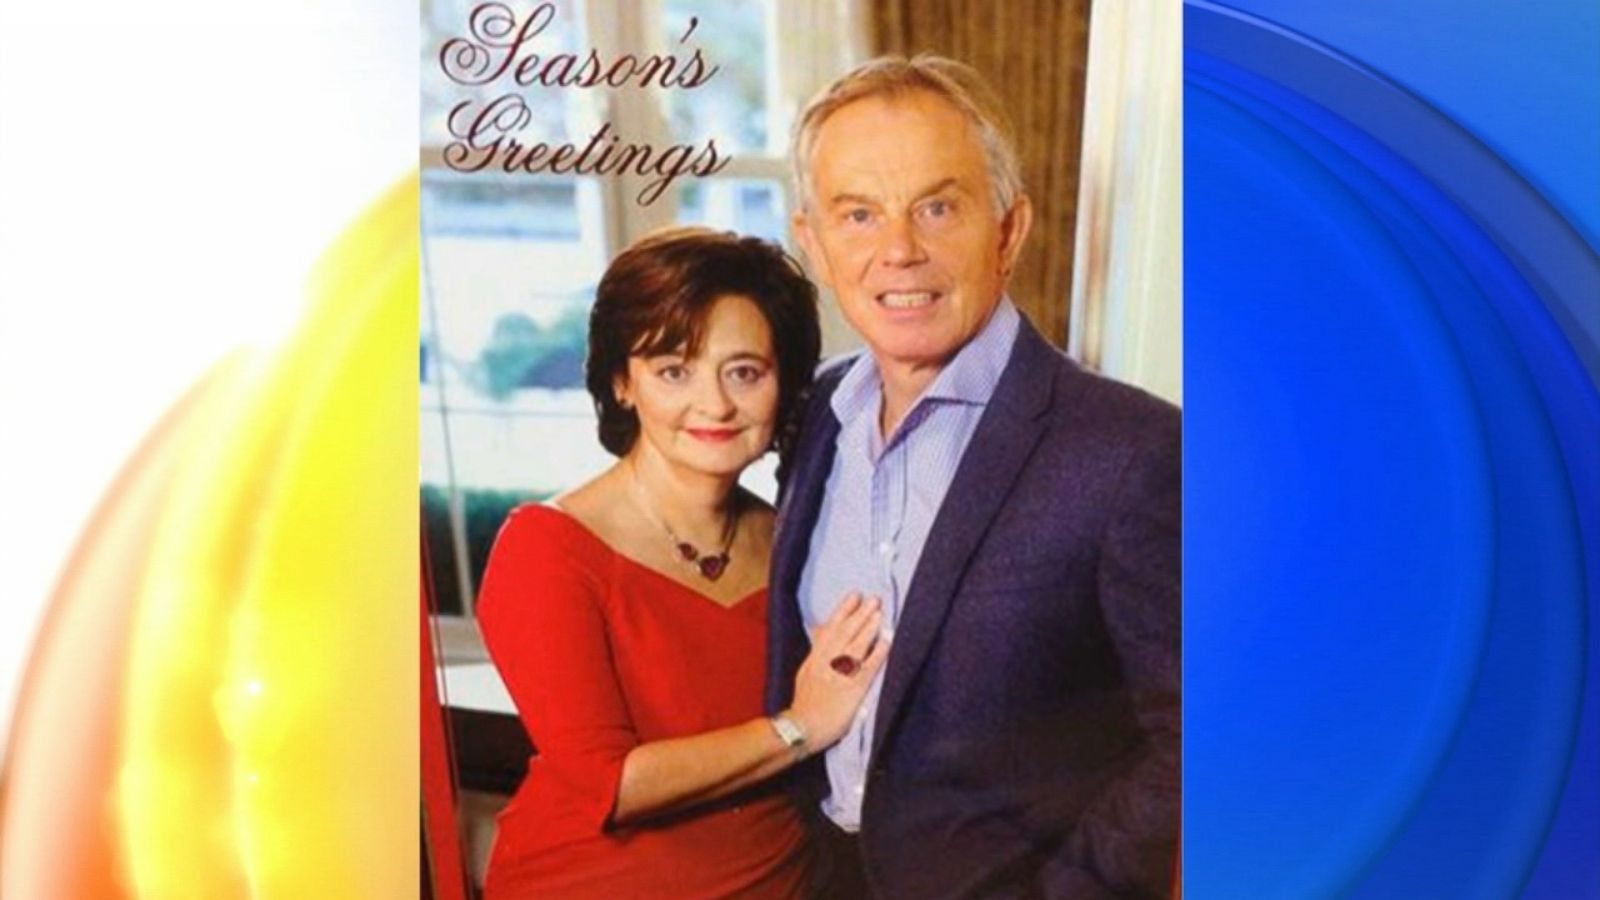 Bizarre Christmas Cards From Politicians Through the Years - ABC News